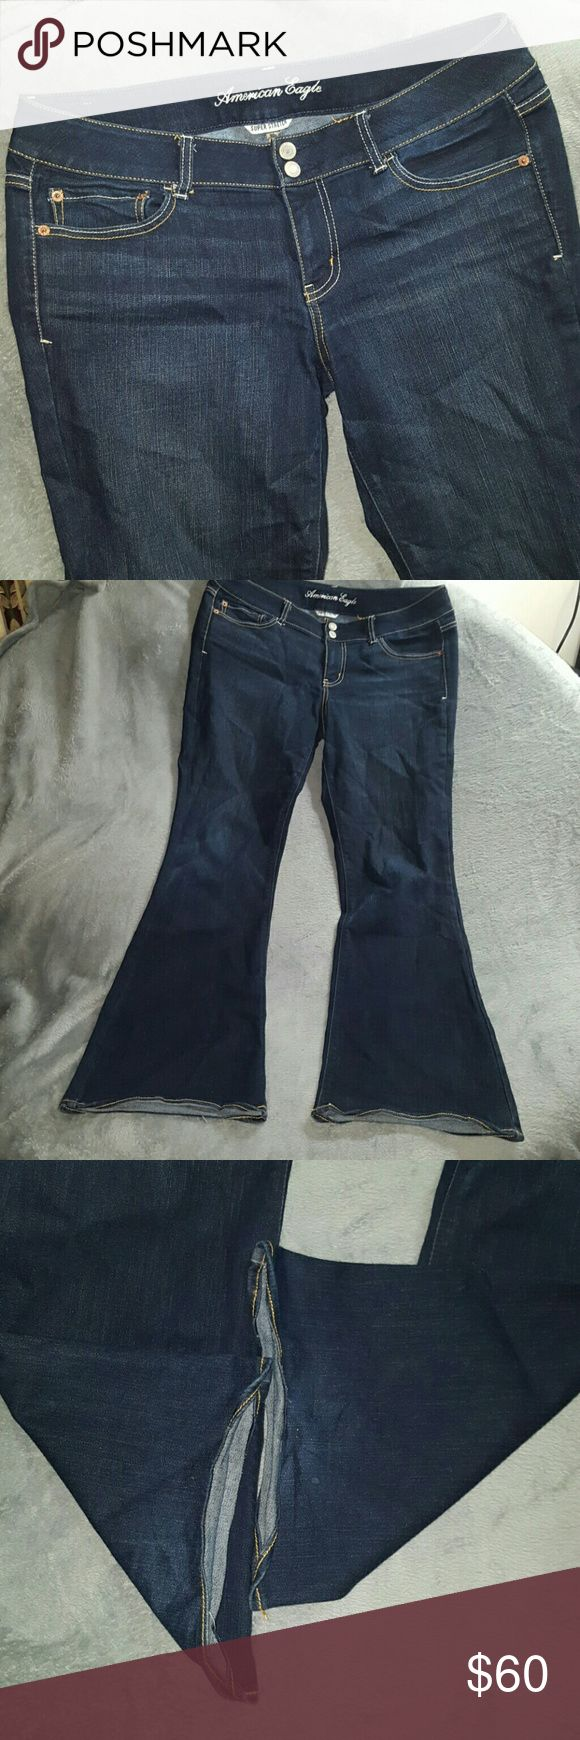 1 HR SALE ARTIST STRETCH Jeans NWOT American Eagle ARTIST SUPER STRETCH Jeans ~ New Without Tags ~ American Eagle ~ Size 14 regular ~ 70% cotton 16% rayon 12% polyester 2% spandex. AMAZING STYLE OF High Quality American Eagle jeans! I ship daily (#B1 location) American Eagle Outfitters Jeans